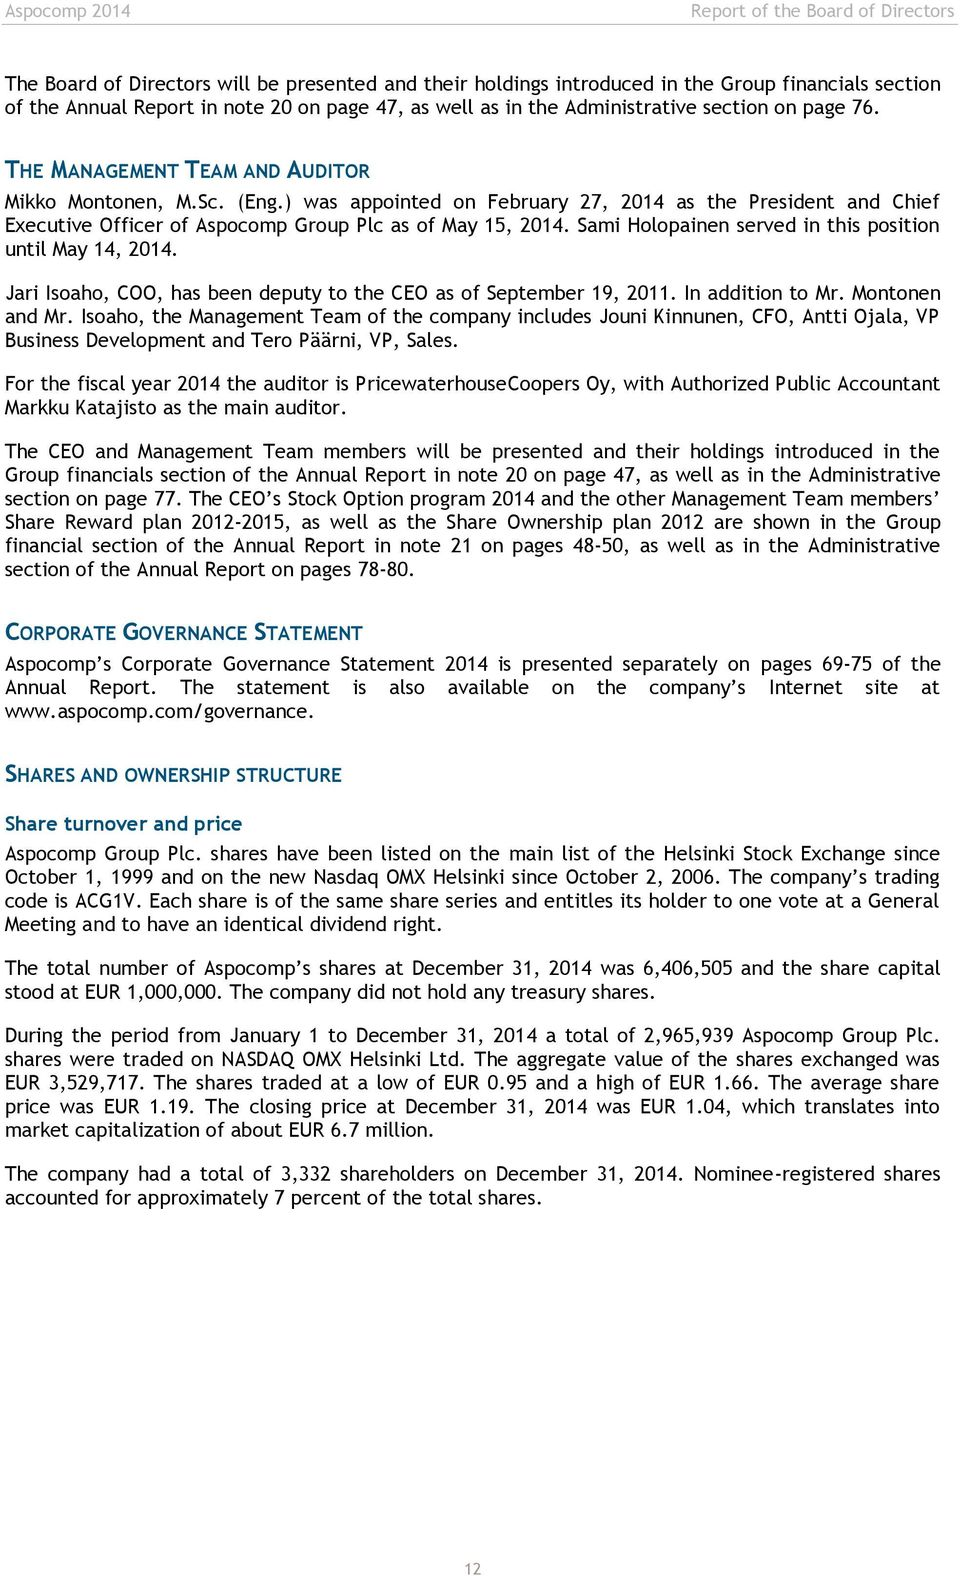 ) was appointed on February 27, 2014 as the President and Chief Executive Officer of Aspocomp Group Plc as of May 15, 2014. Sami Holopainen served in this position until May 14, 2014.